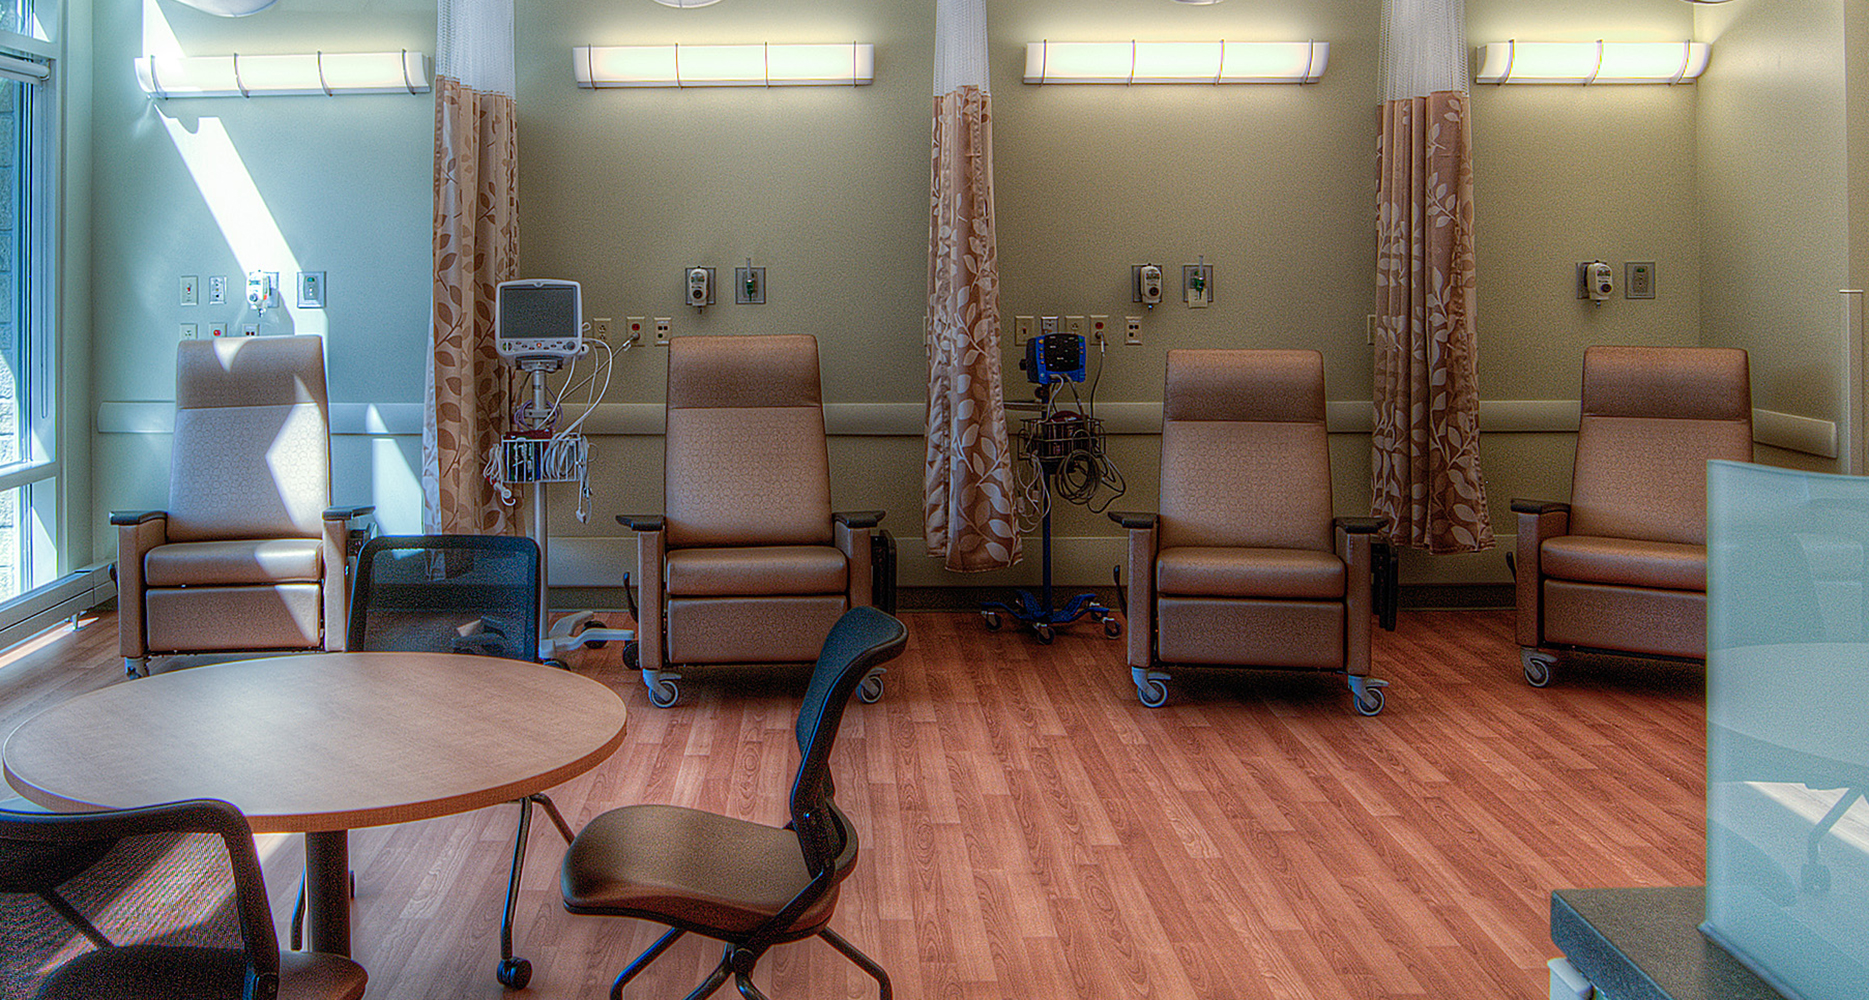 Tusk wall fixtures in a medical lighting designilluminatepatient infusion seating area